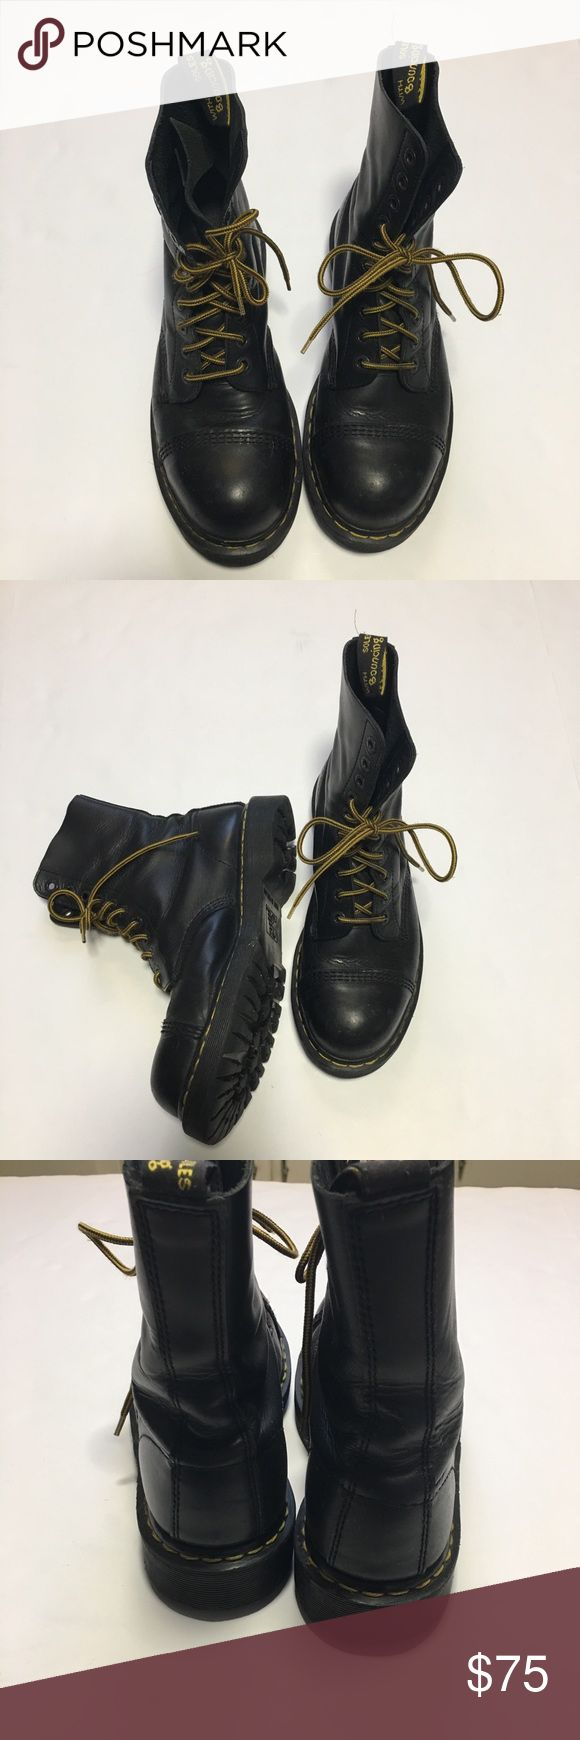 "Dr. Marten Air-Wair Black Steel Toe Boots. SZ 10. Black 8761 Cap Steel Toe Boots by Dr. Marten Air-Wair.  -10 eyelet  -Leather upper & lining -Air Cushioned sole -Traditional lace-up with corded-braid laces & heavy duty eyelets -Trademark ""Air Wair"" heel loop -Extra chunky heel Size tag faded but they are a size 10.  See measurements but note sole extends actual shoe by approximately 3/8"" all around making them about 11 1/8"" = just over 28cm.  DM size chart also shows this a US 10.  Great…"